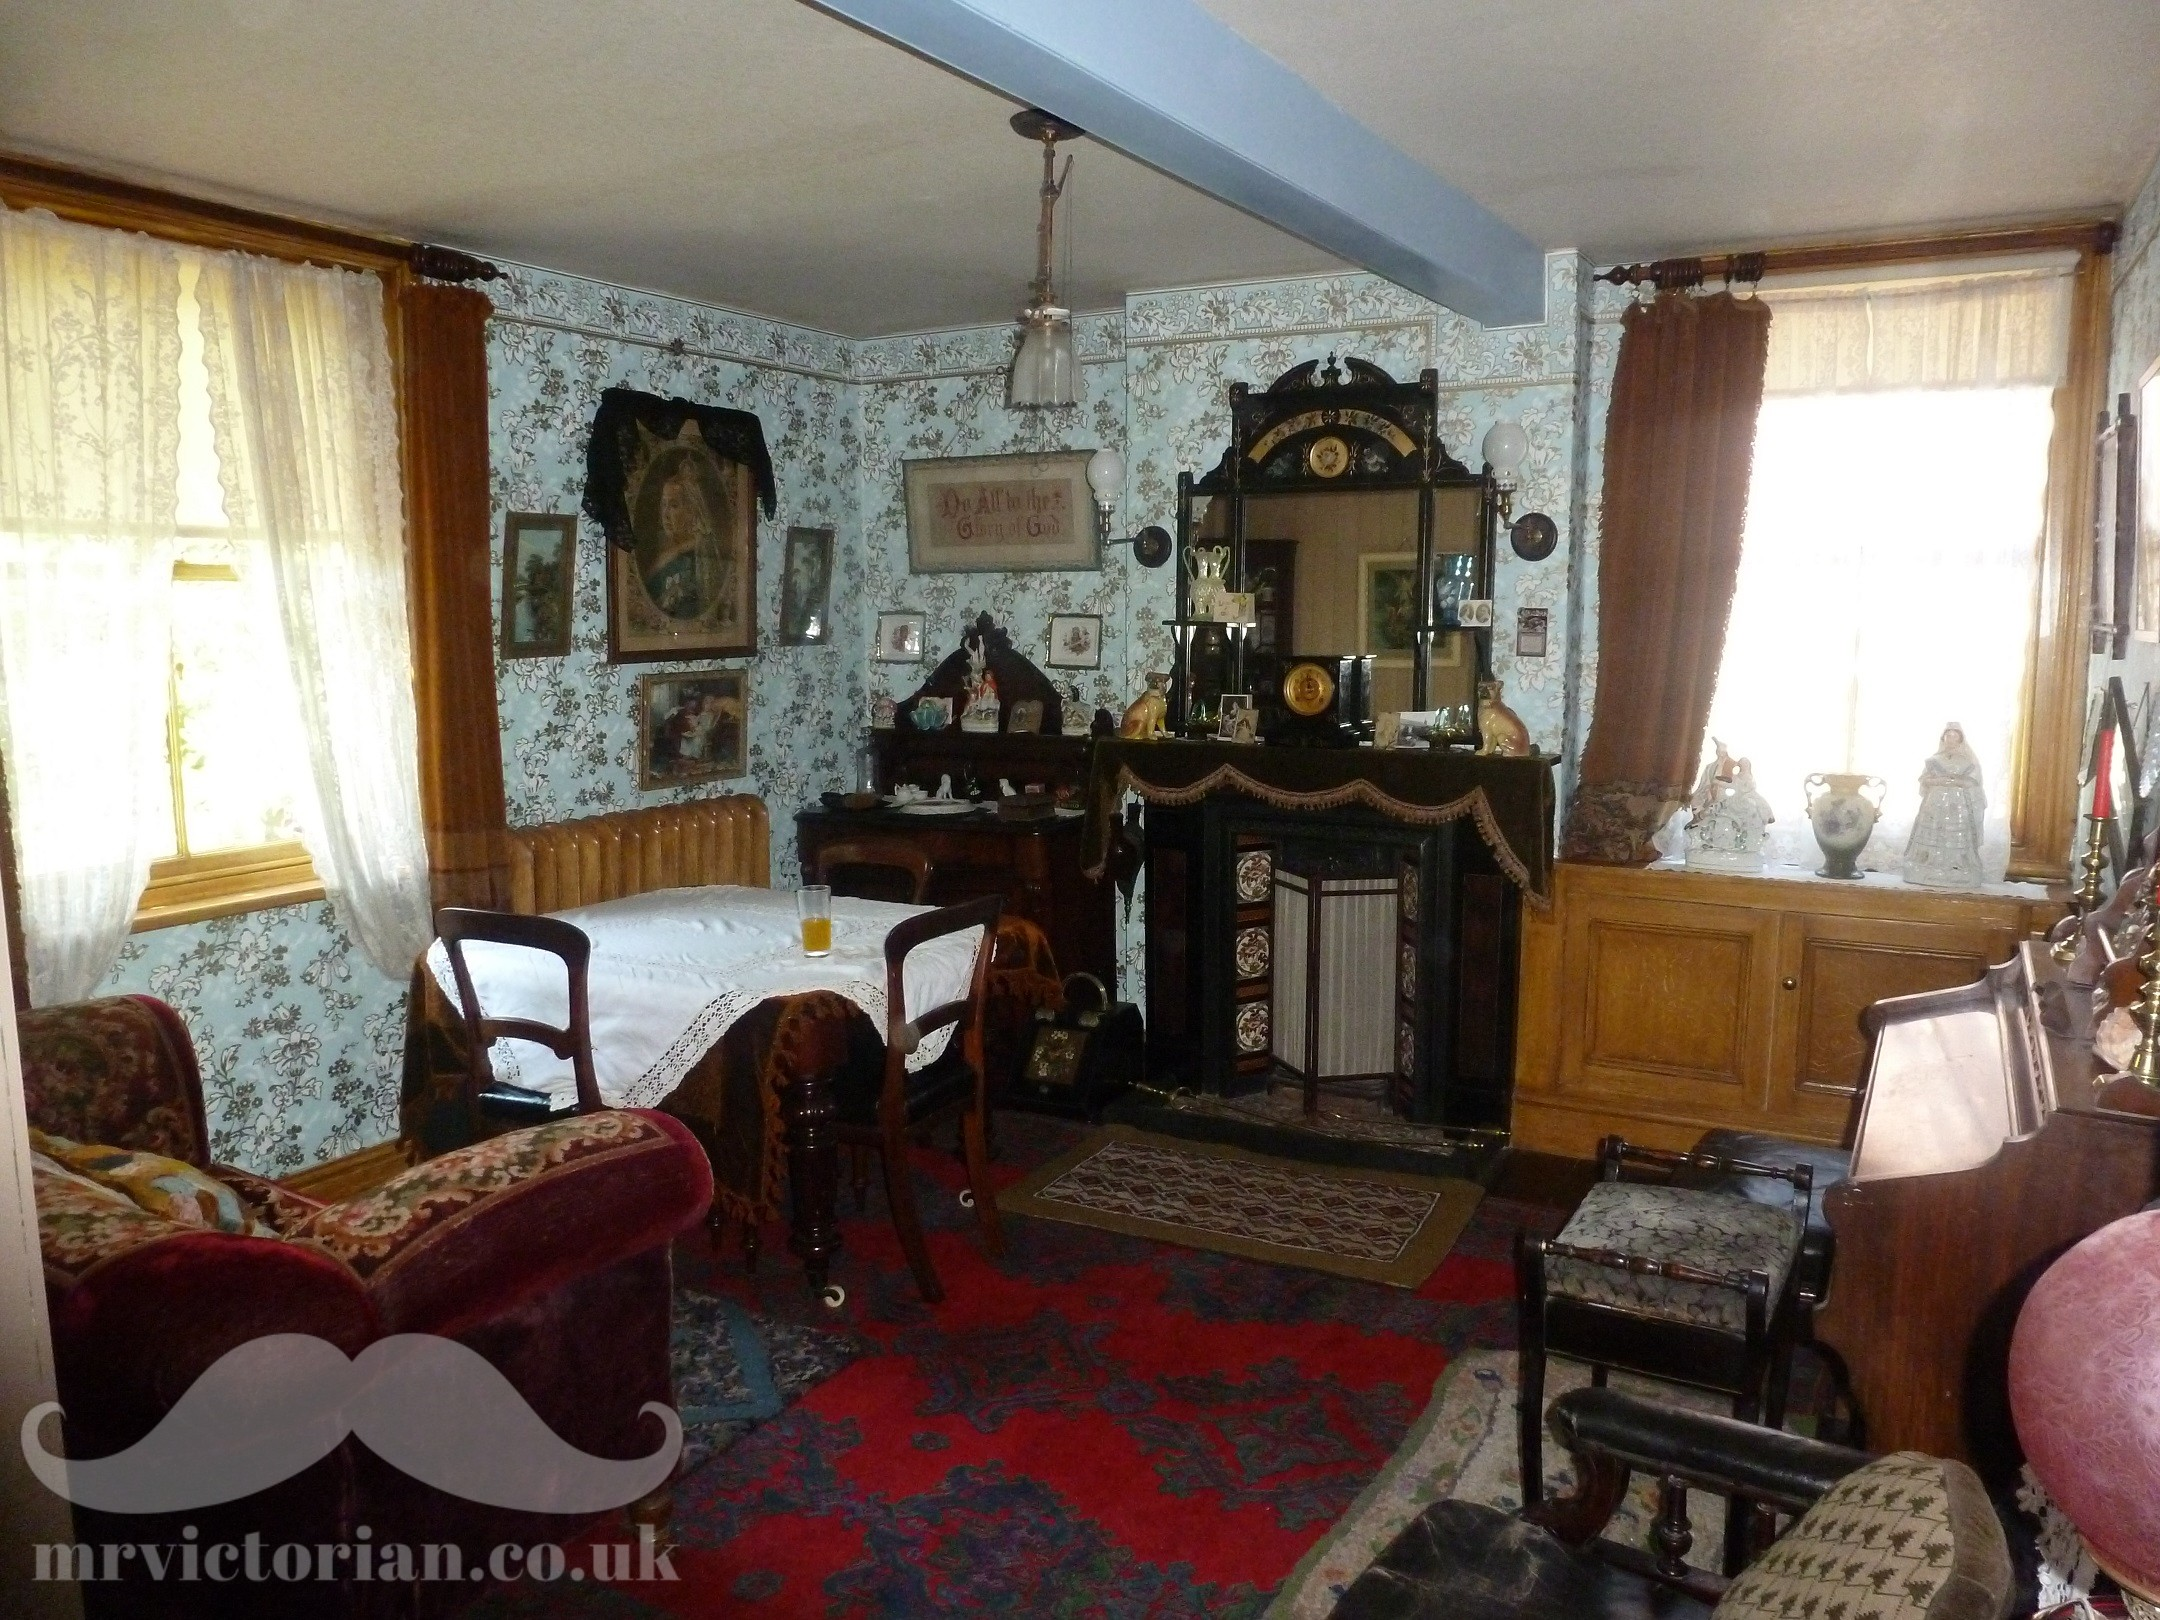 Victorian house tour parlour. Visit www.mrvictorian.co.uk